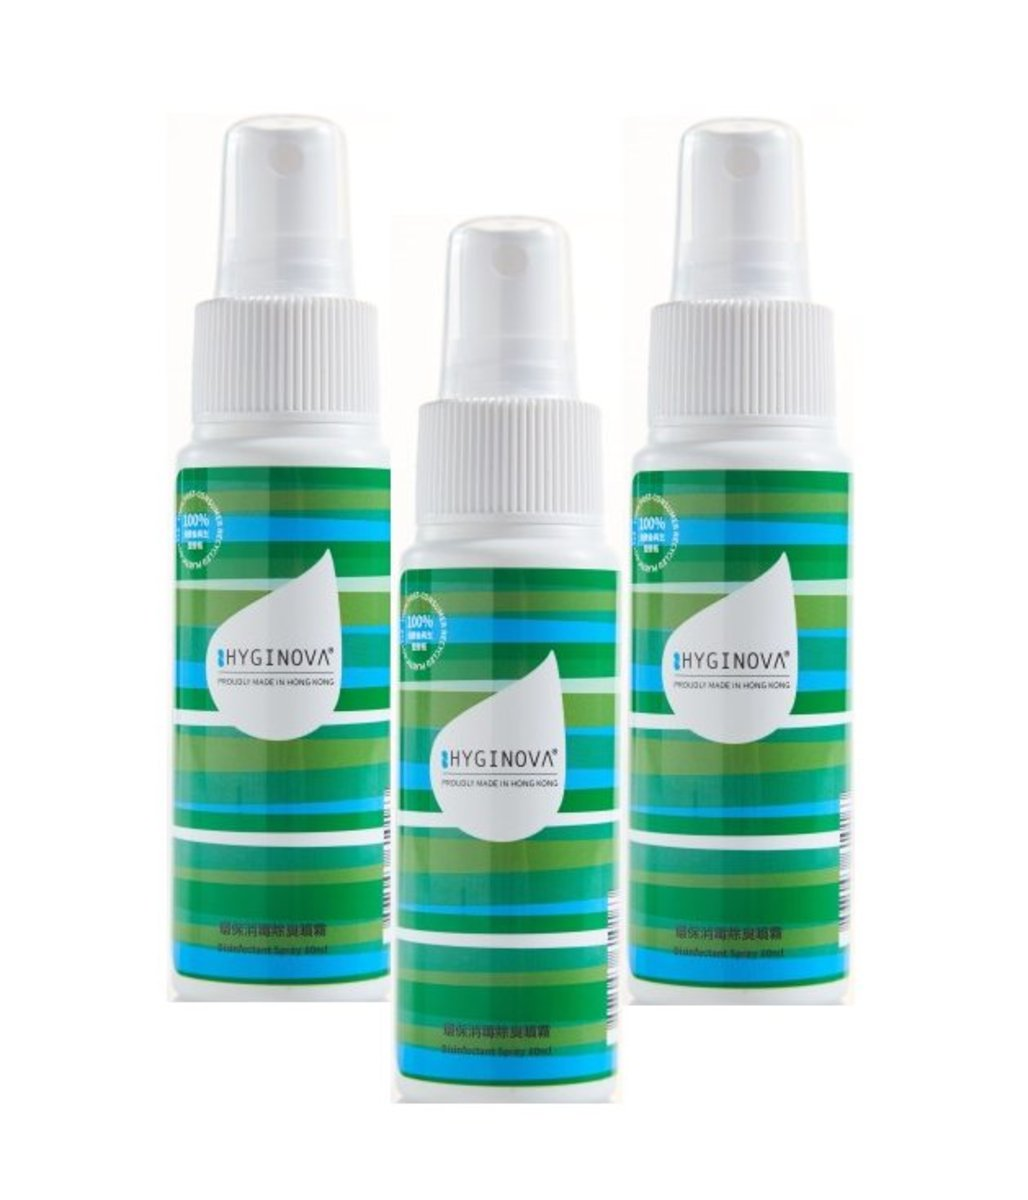 3 sets of Disinfectant Spray 60ml